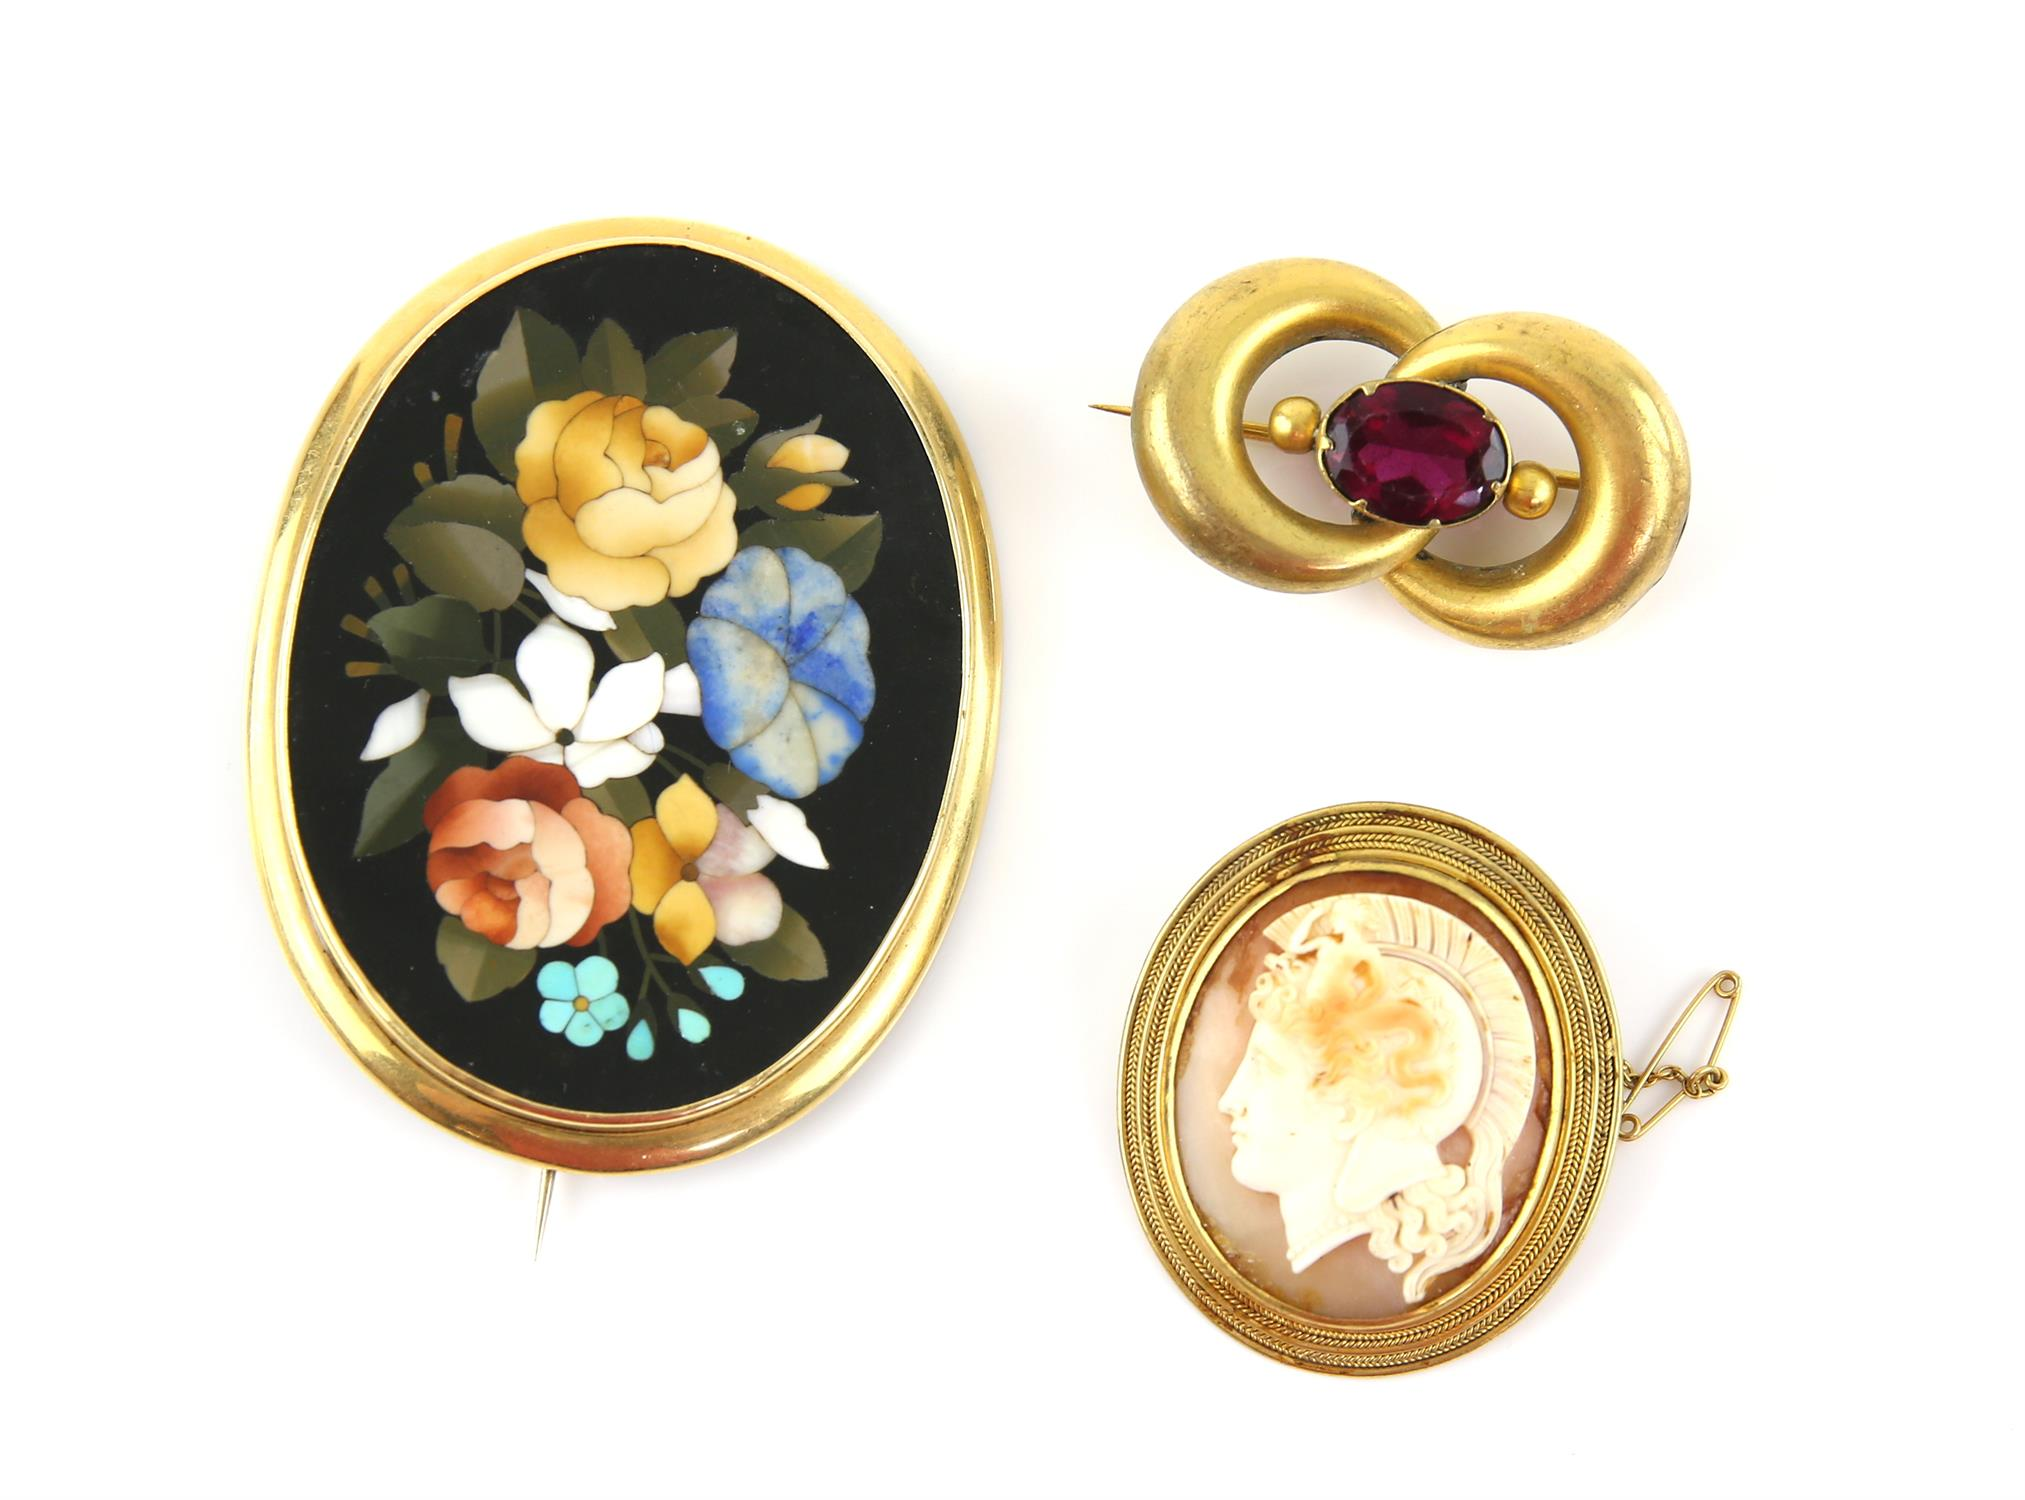 Pietra Dura floral brooch, featuring a floral motif including a forget-me-not, in a gold mount,